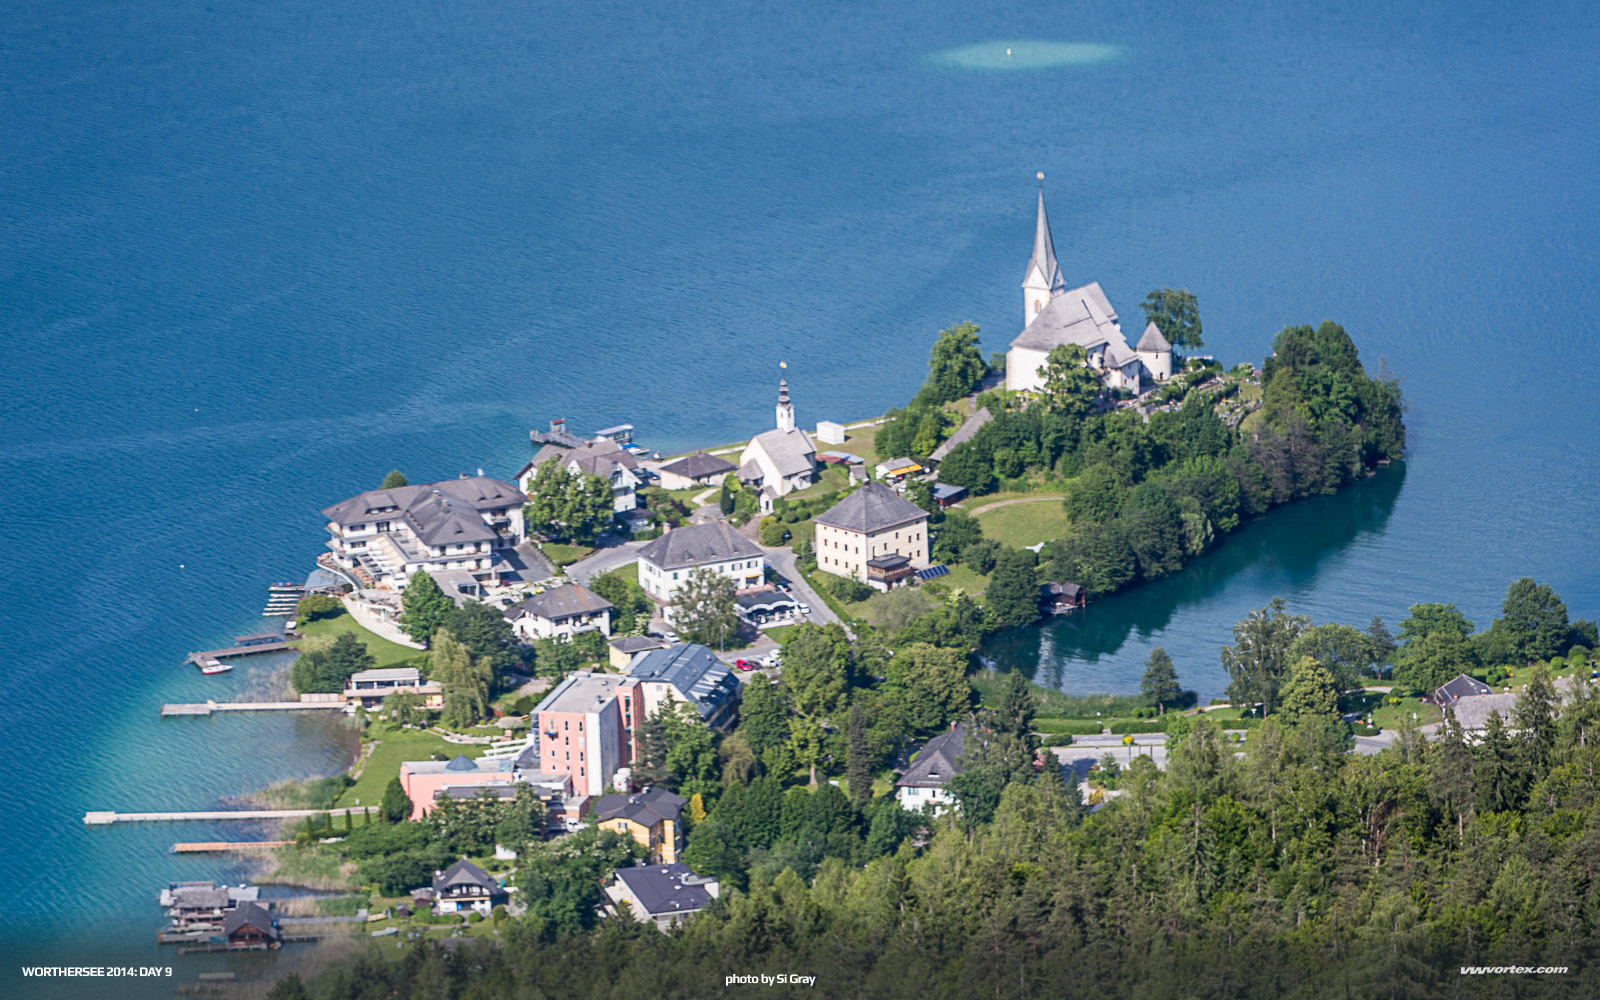 2014-Worthersee-Day-9-Si-Gray-421